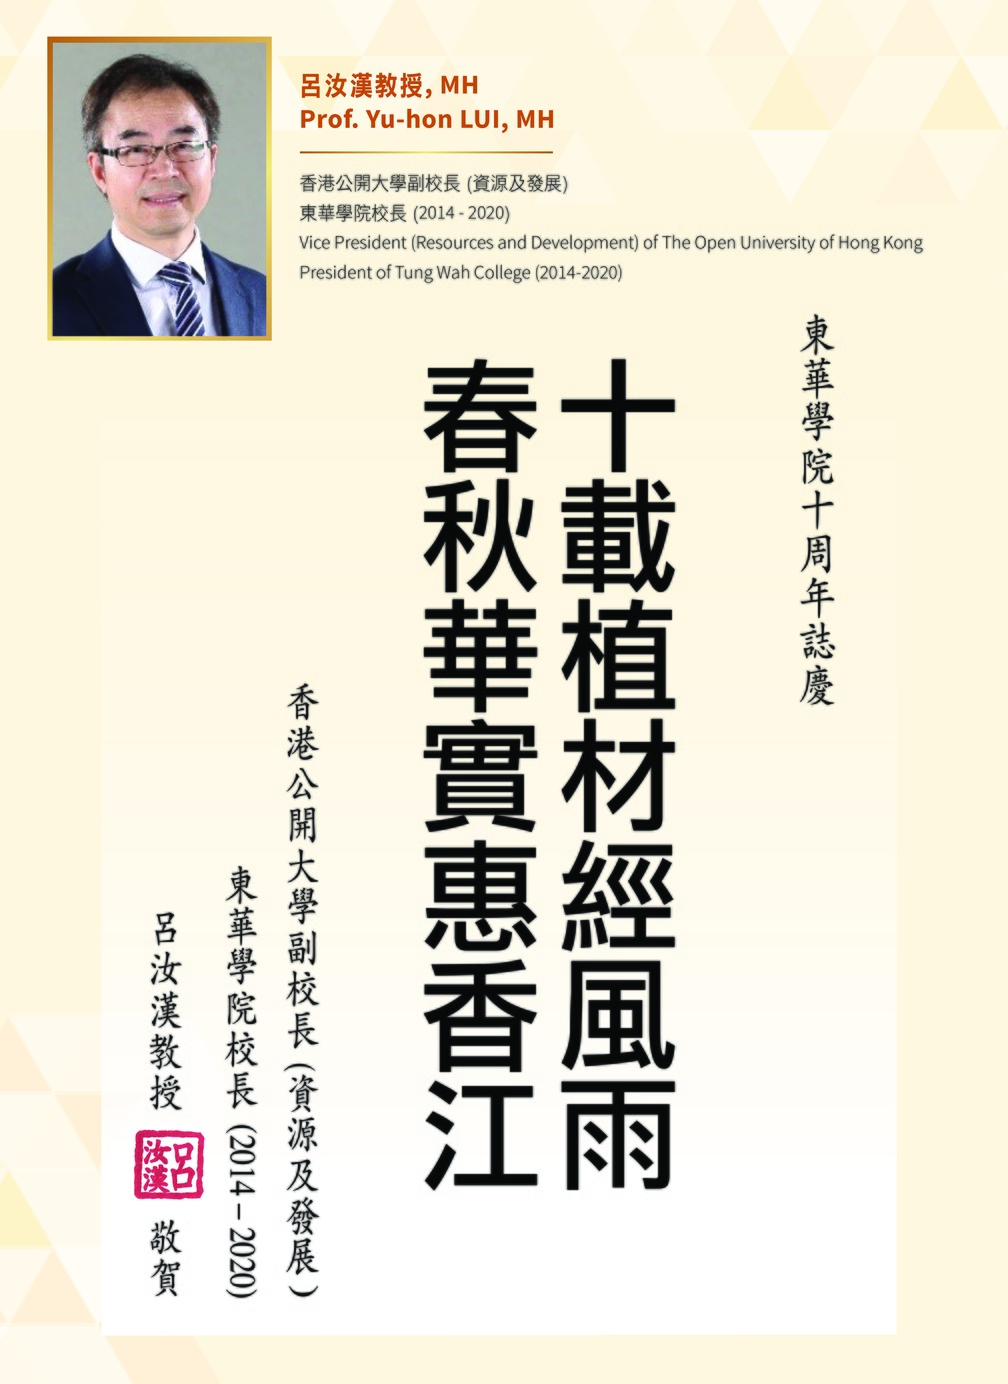 Vice President (Resources and Development) of The Open University of Hong Kong President of Tung Wah College (2014-2020)